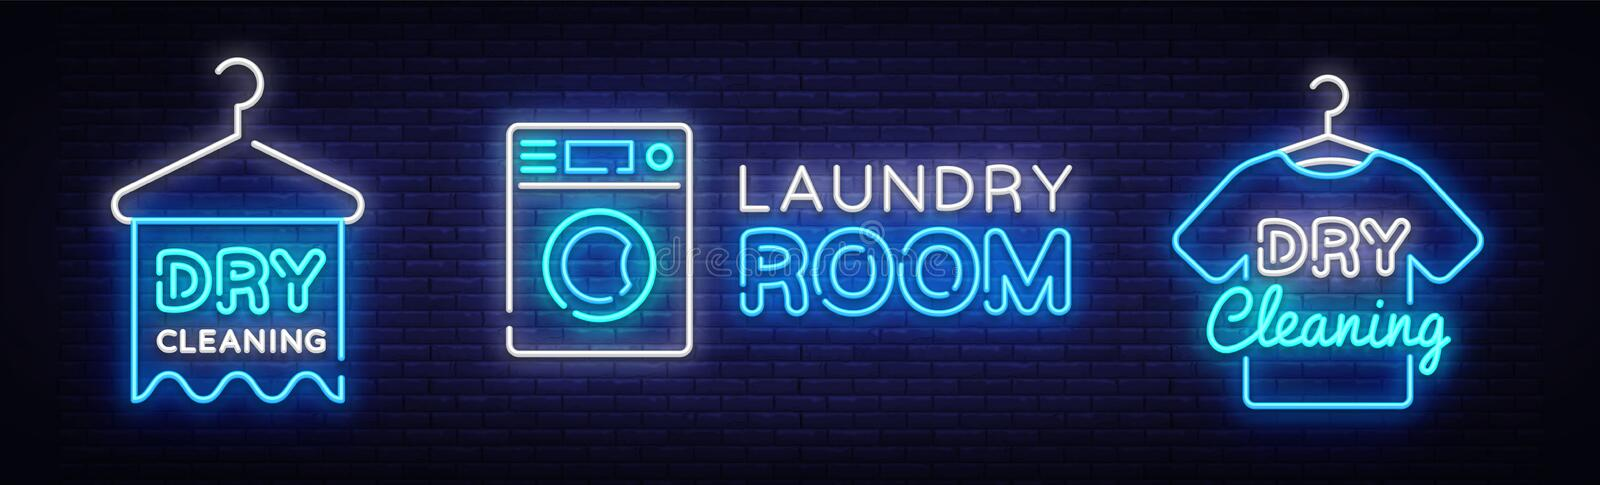 Dry Cleaning Neon Logo Collection Vector. Laundry Room neon sign, design template, modern trend design, night neon vector illustration